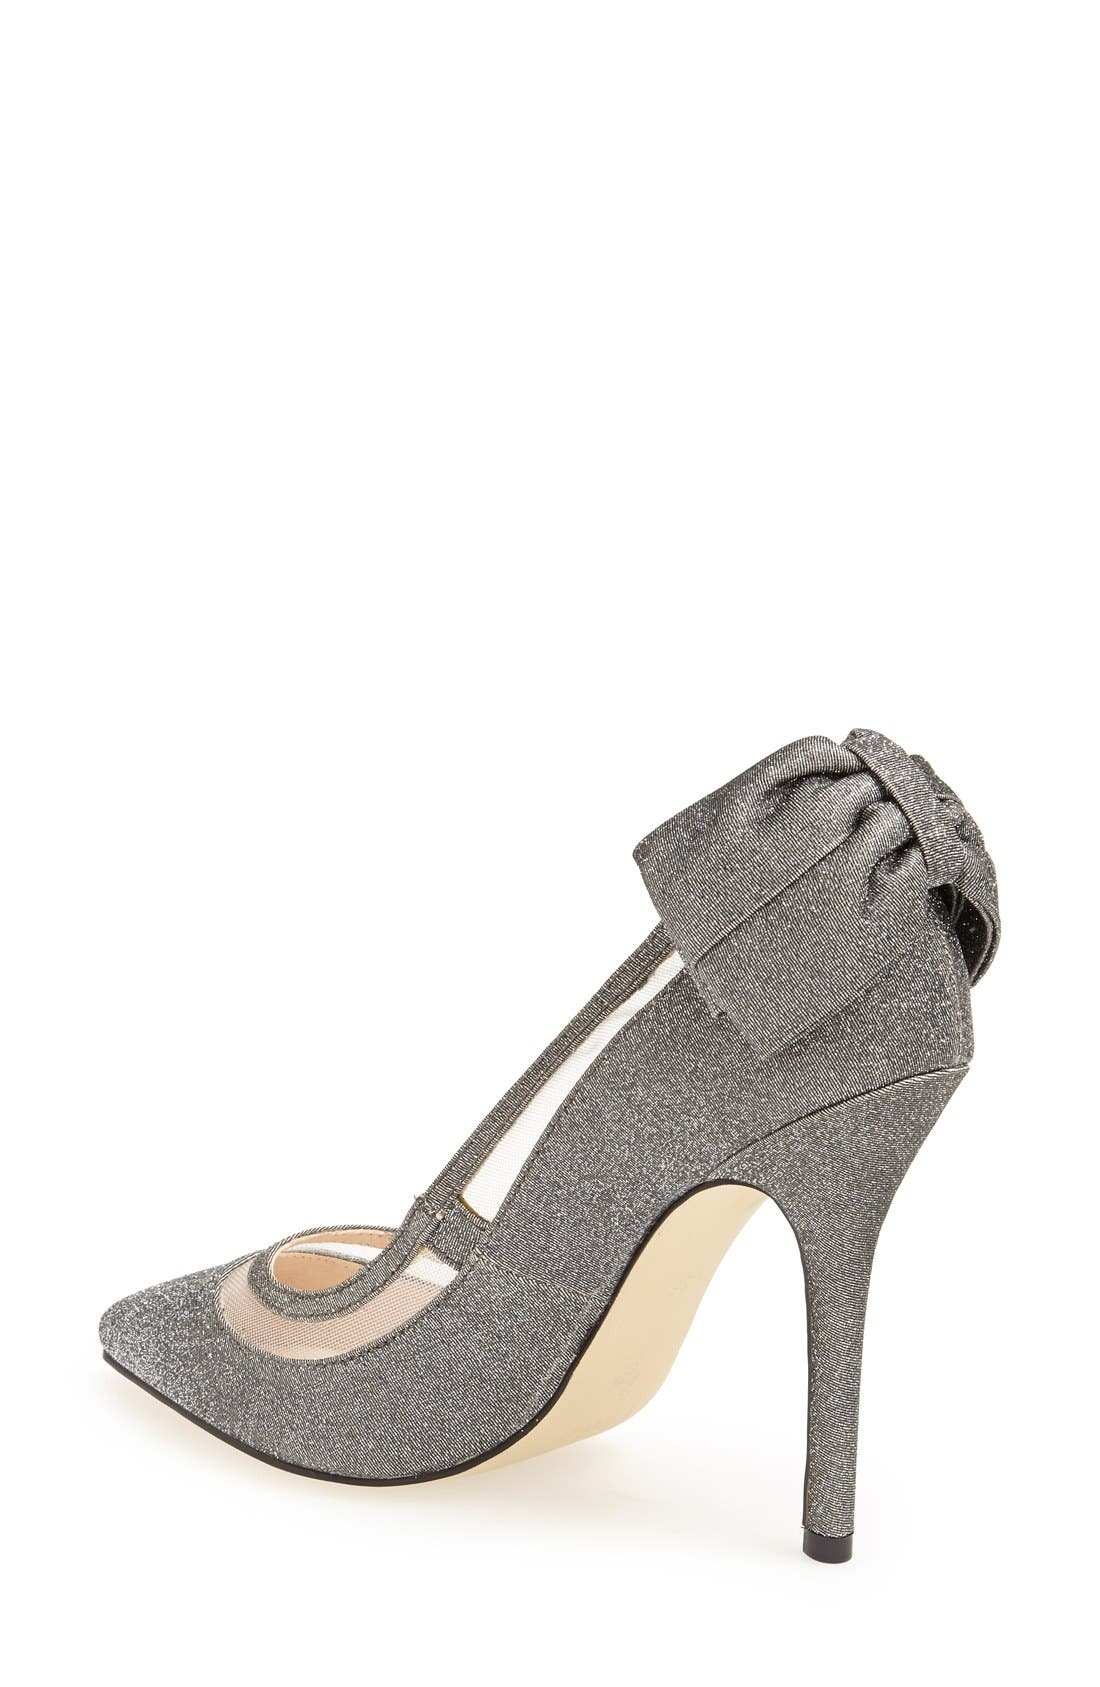 'Crusy' Glitter Pointy Toe Pump,                             Alternate thumbnail 3, color,                             020